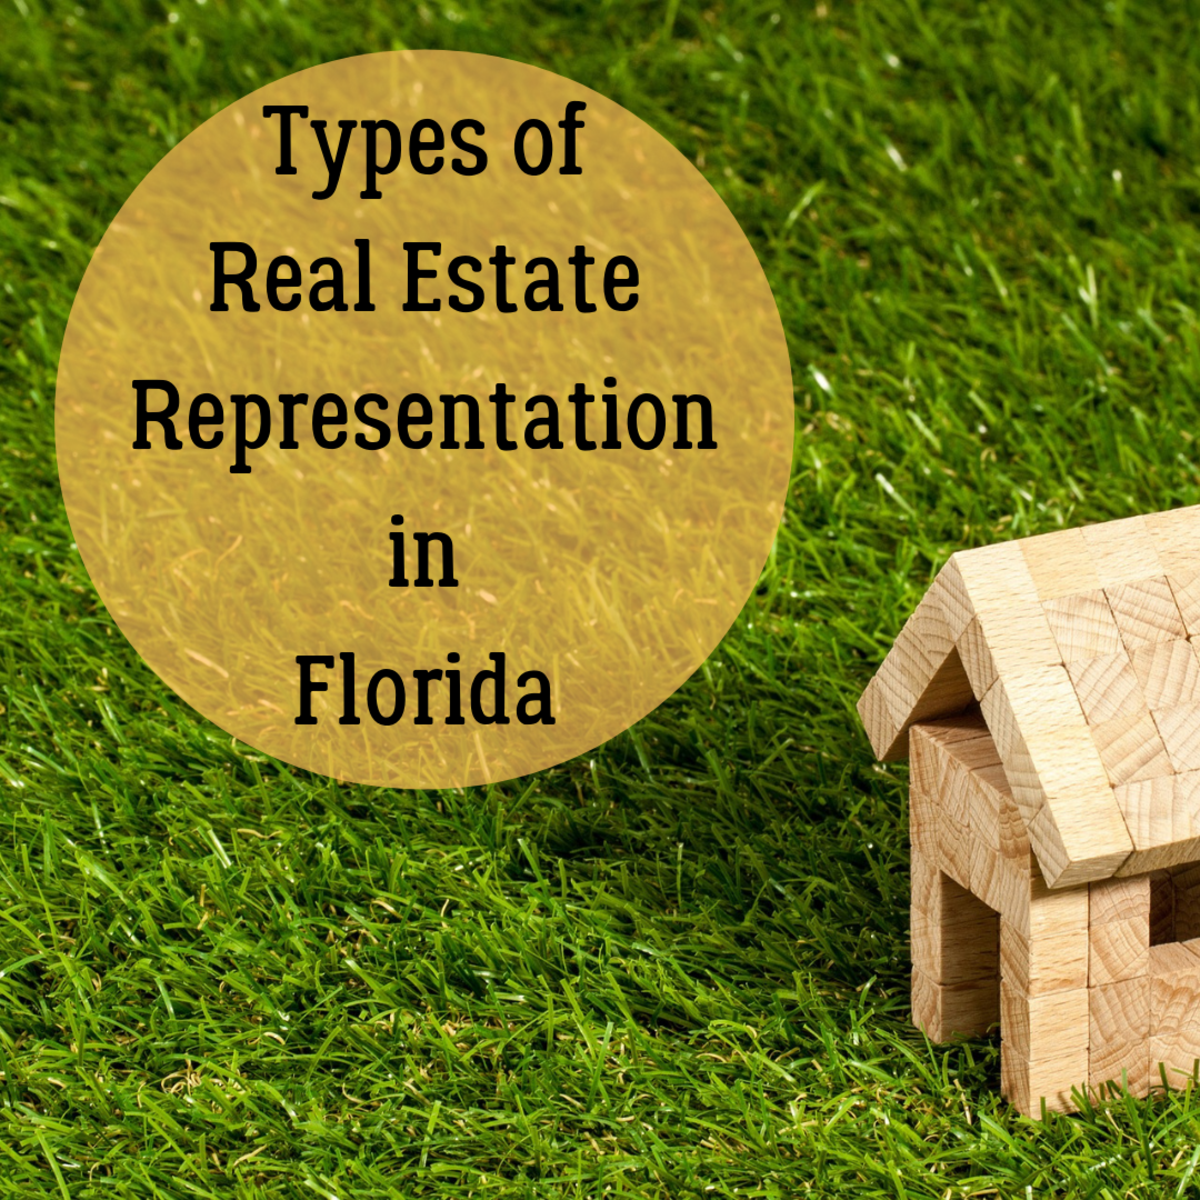 Single Agency, Dual Agency, and Transaction Broker Relationships in FL